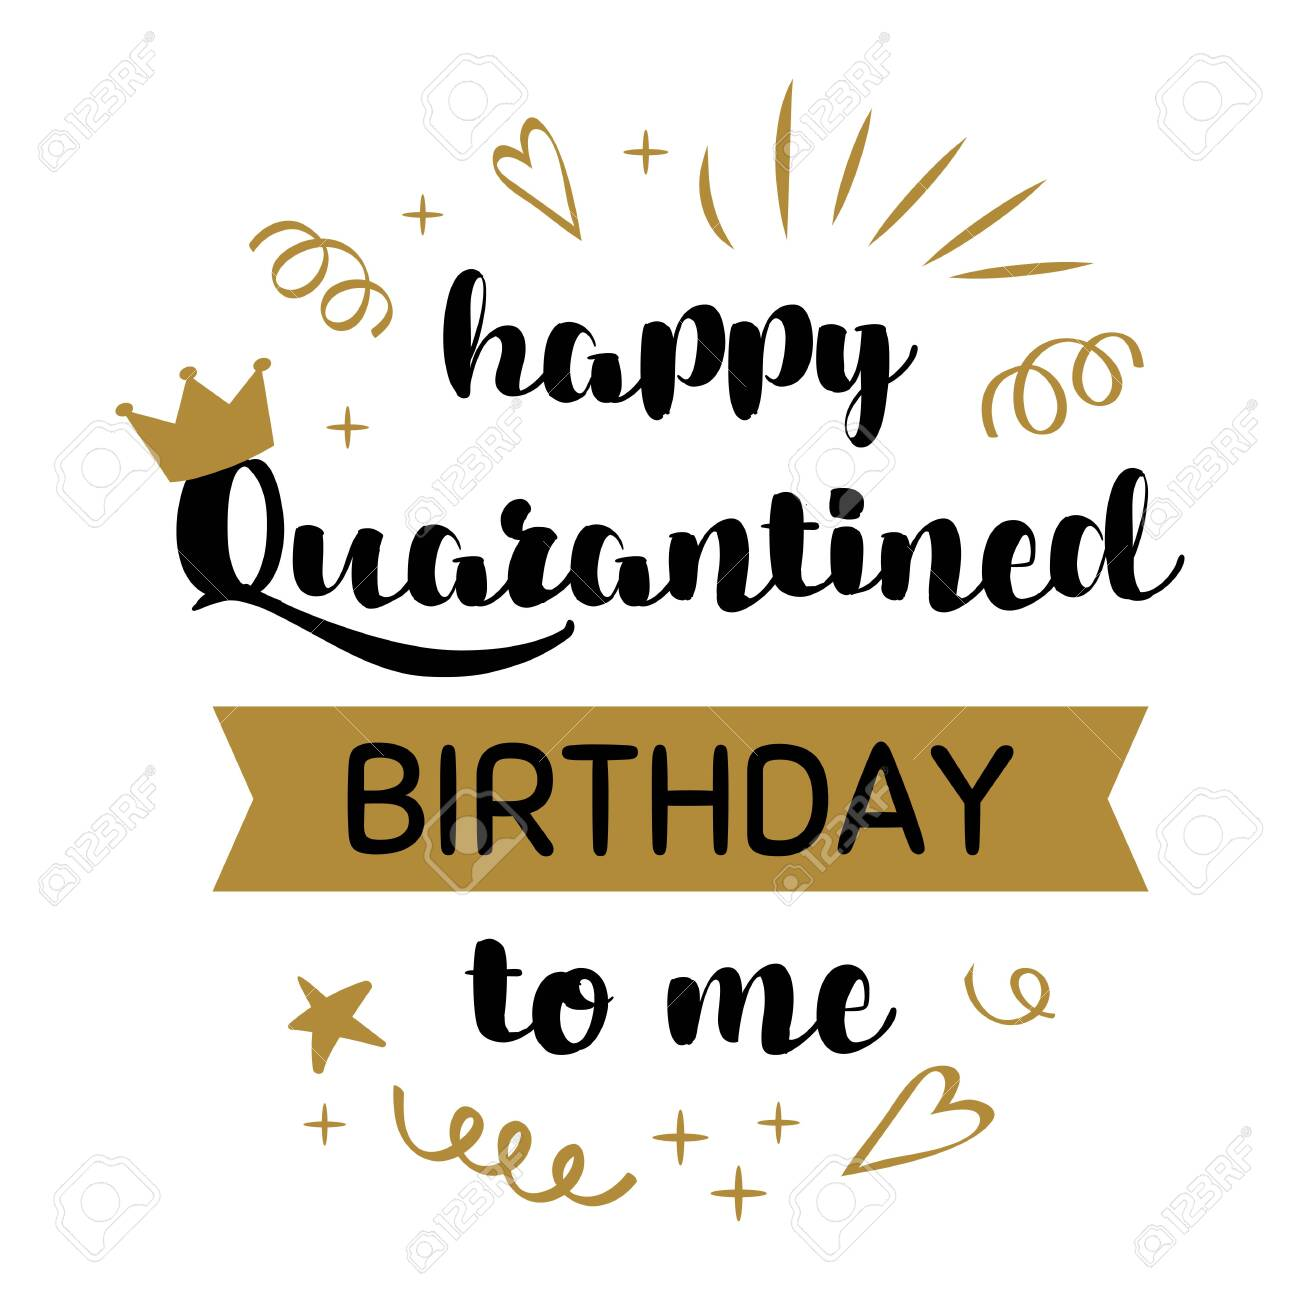 happy quarantined birthday to me 2020 celebration poster for